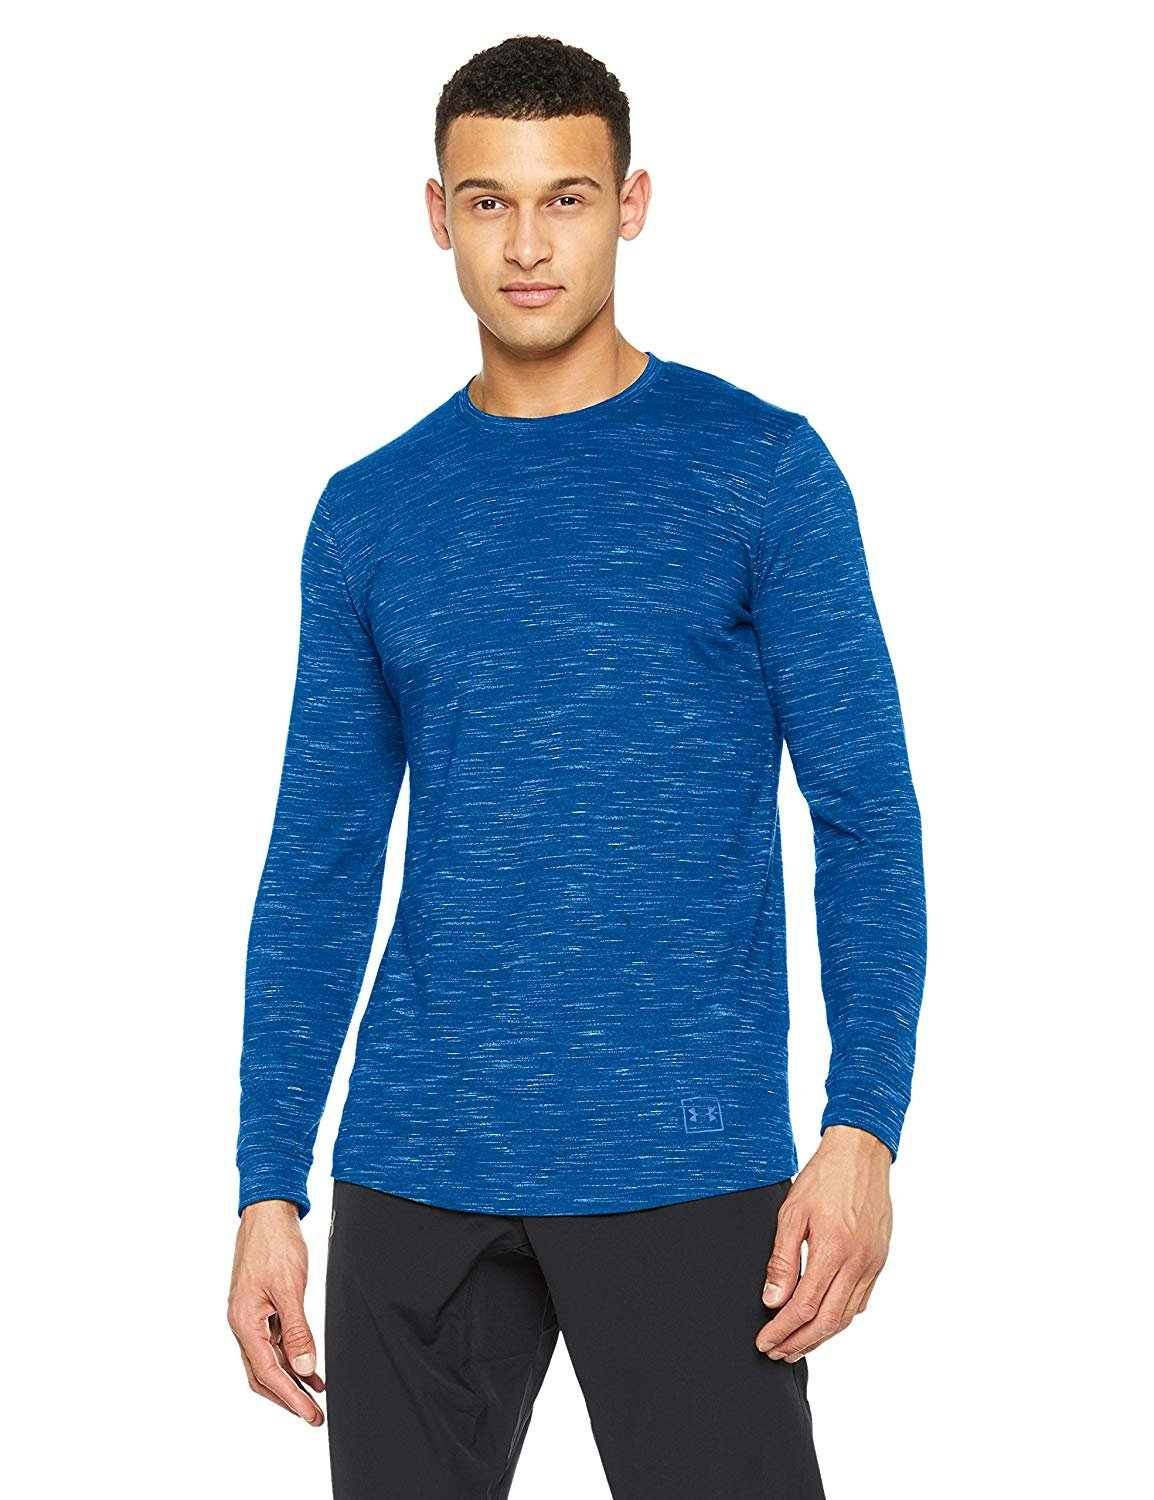 Under Armour Men's Sportstyle Long Sleeve T-Shirt